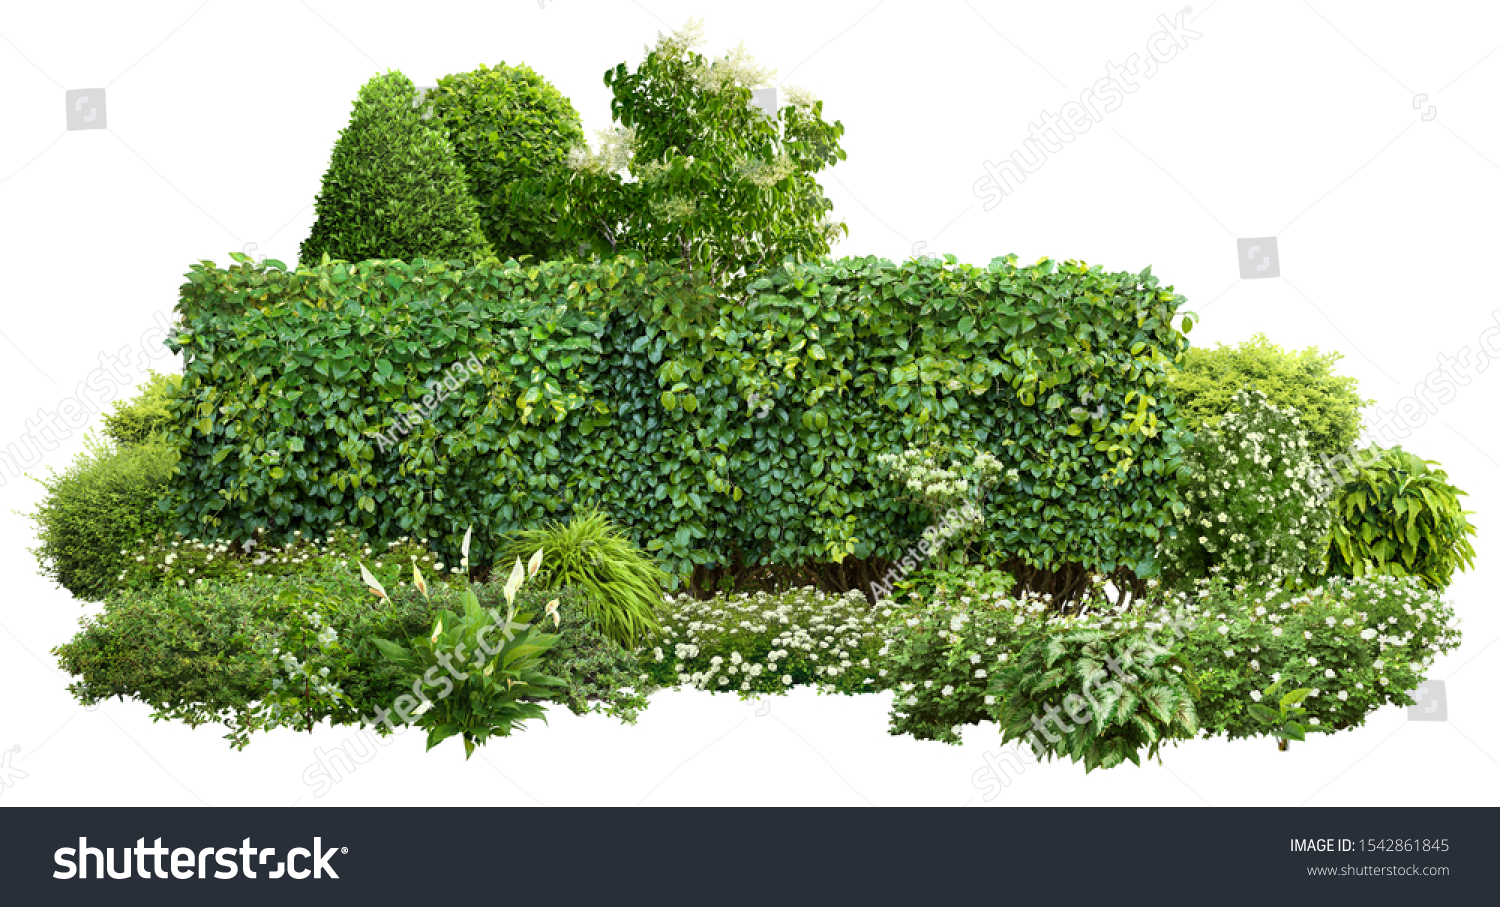 Cutout green hedge with flower bed. Garden design isolated on white background. Flowering shrub and green plants for landscaping. Decorative shrub and boxwood hedge. High quality clipping mask. #1542861845